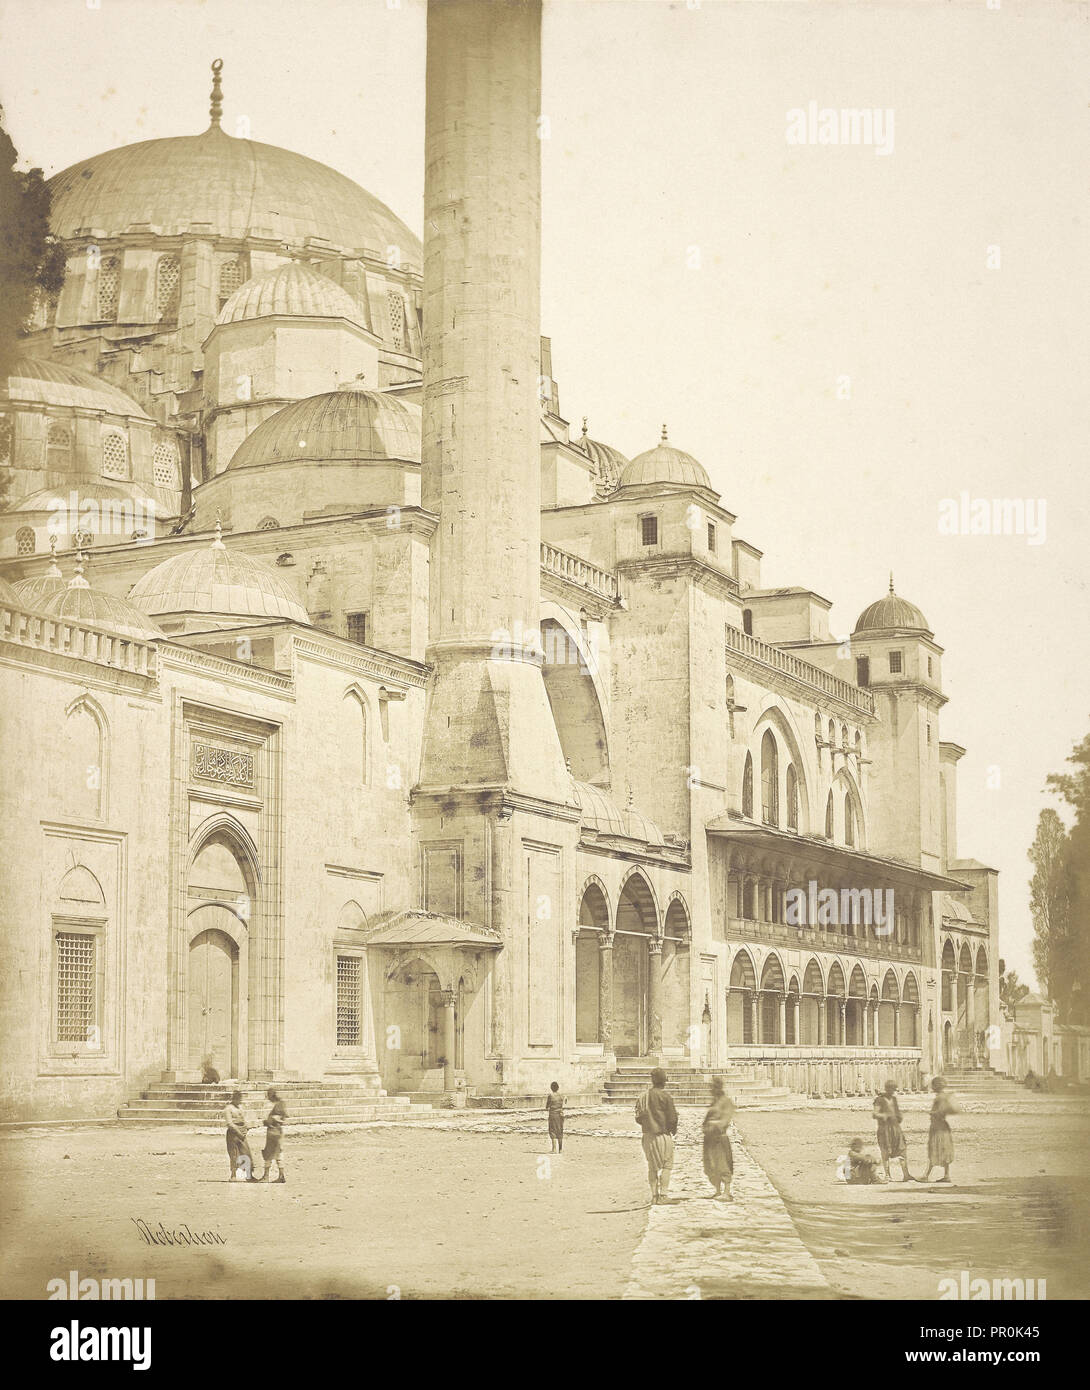 Building with Colonnade, Constantinople; James Robertson, English, 1813 - 1888, Attributed to Felice Beato English, born Italy - Stock Image